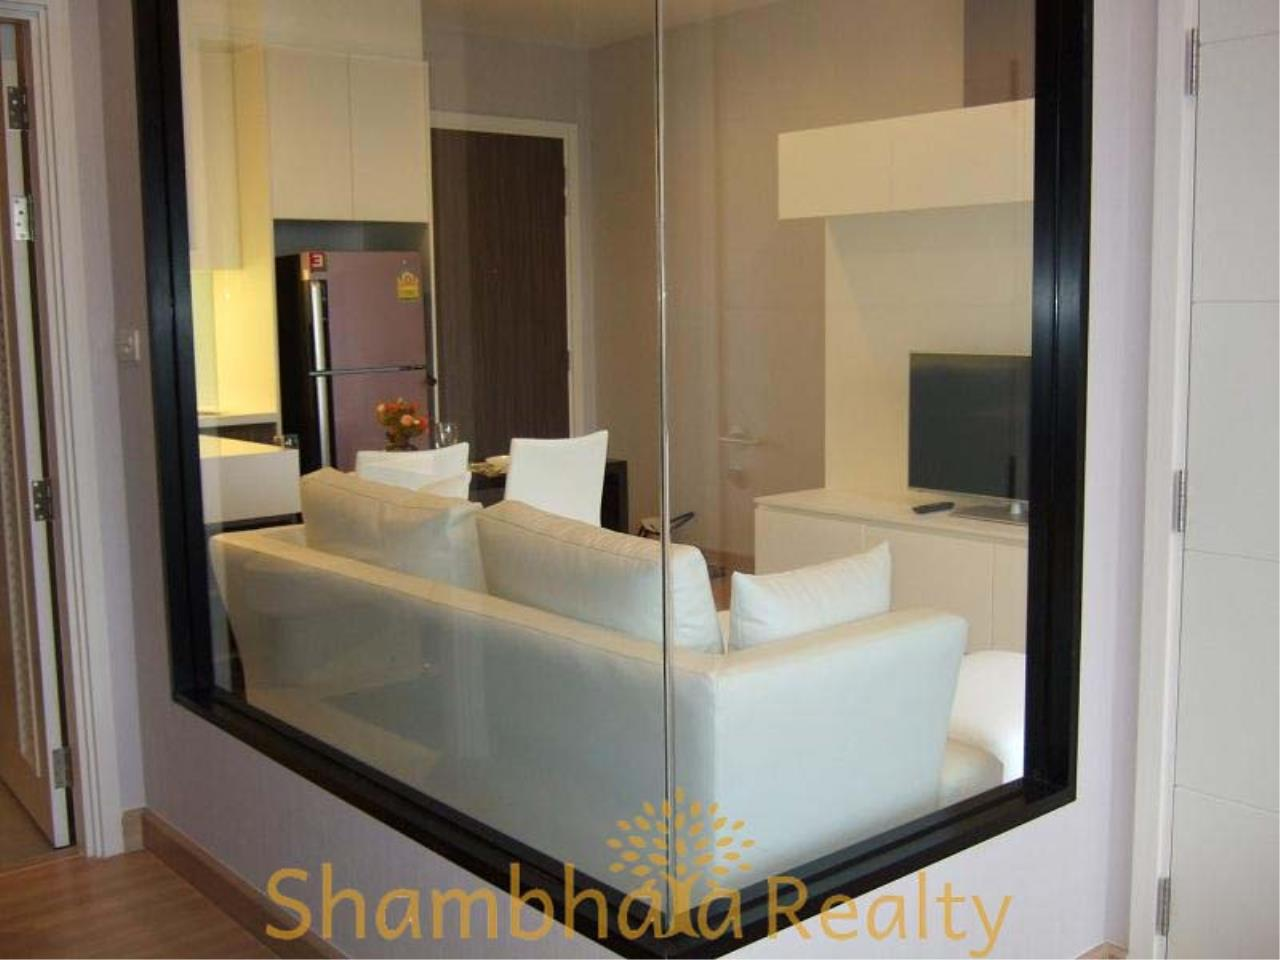 Shambhala Realty Agency's Urbano Absolute Sathon Taksin Condominium for Rent in Krung Thonburi 4